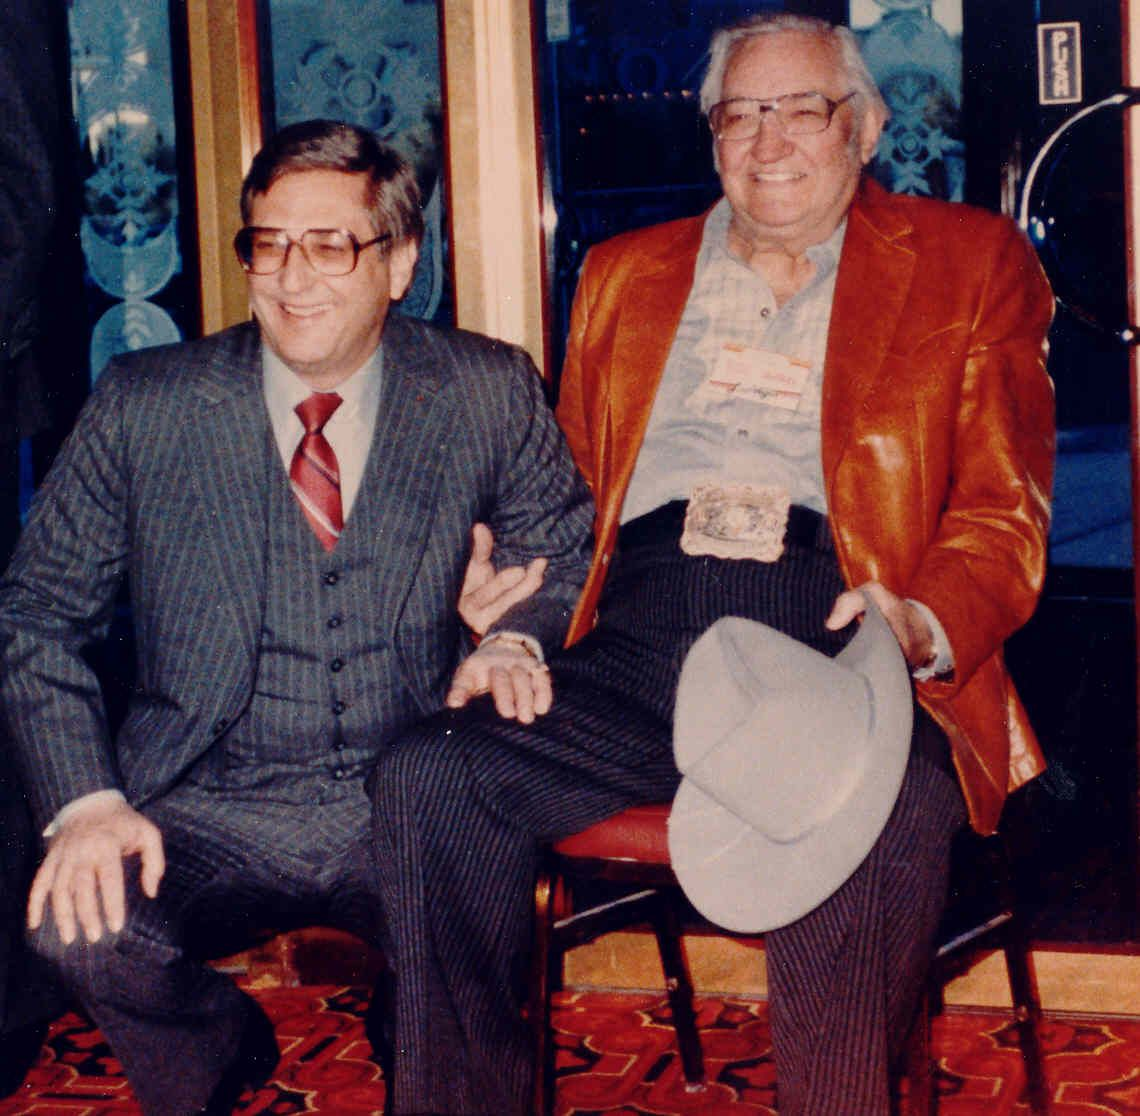 Two men pose for a photo while sitting